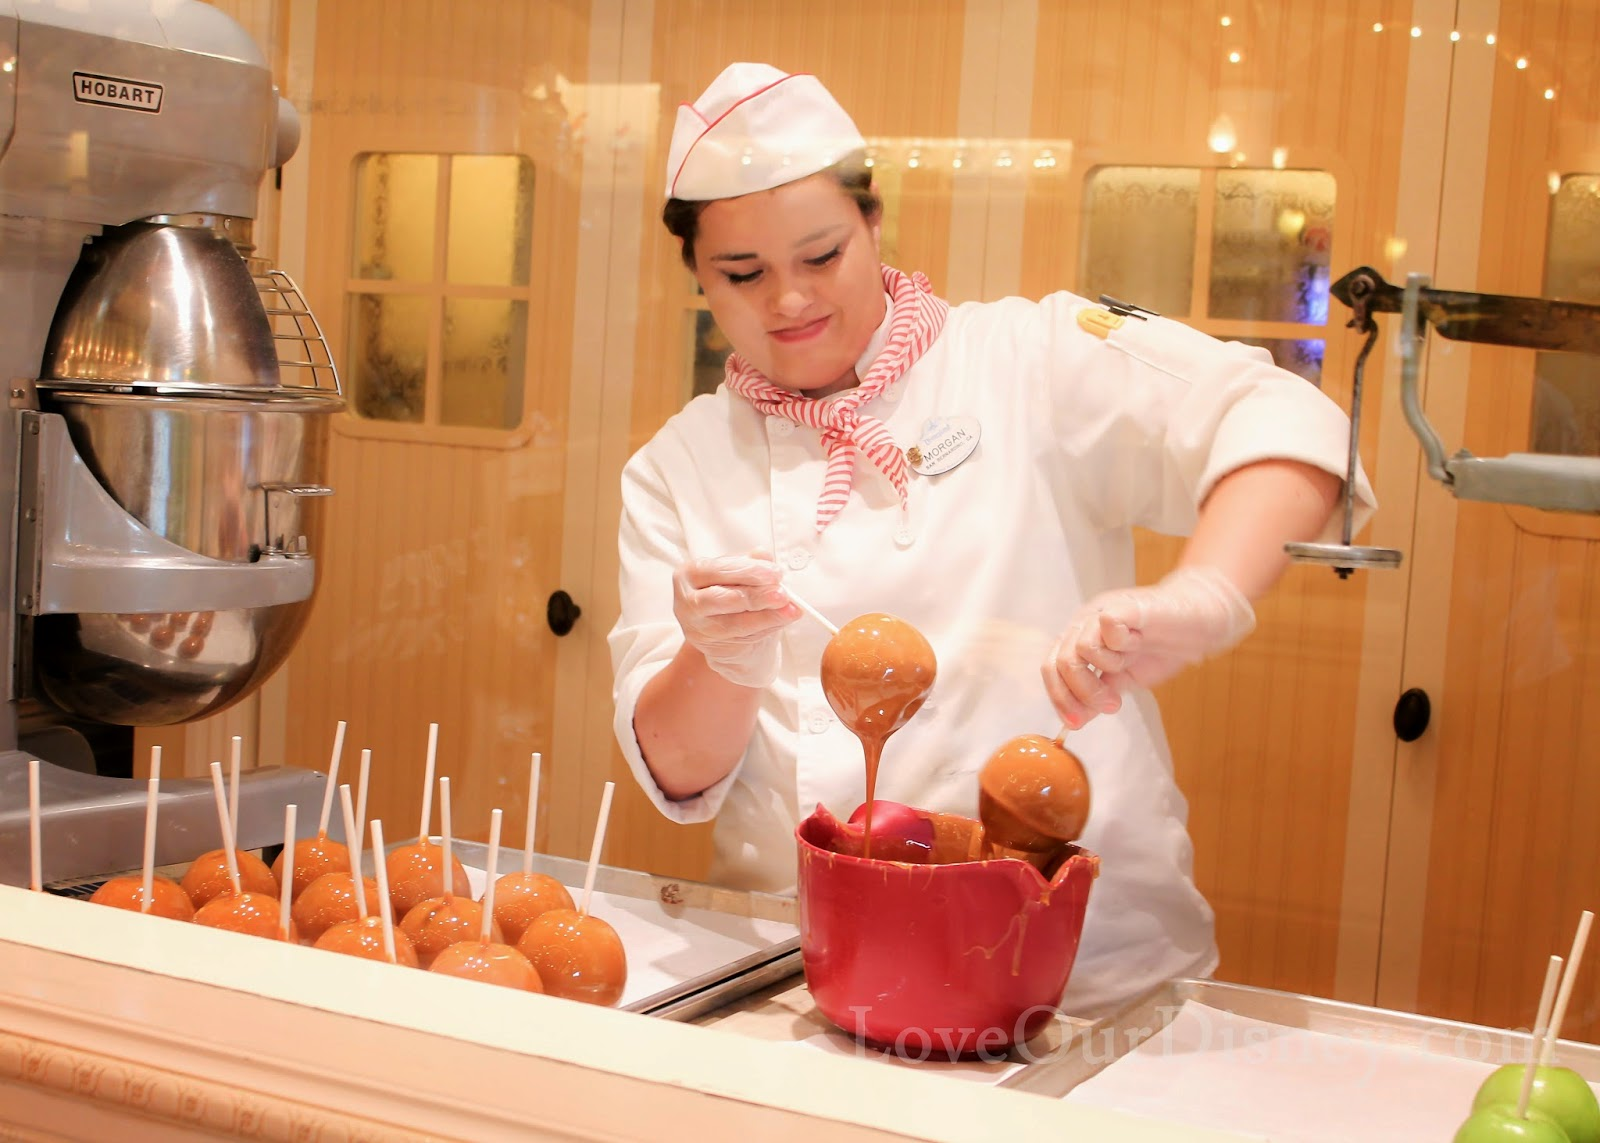 Watch candy being made at Disneyland's Candy Palace. So cool! LoveOurDisney.com